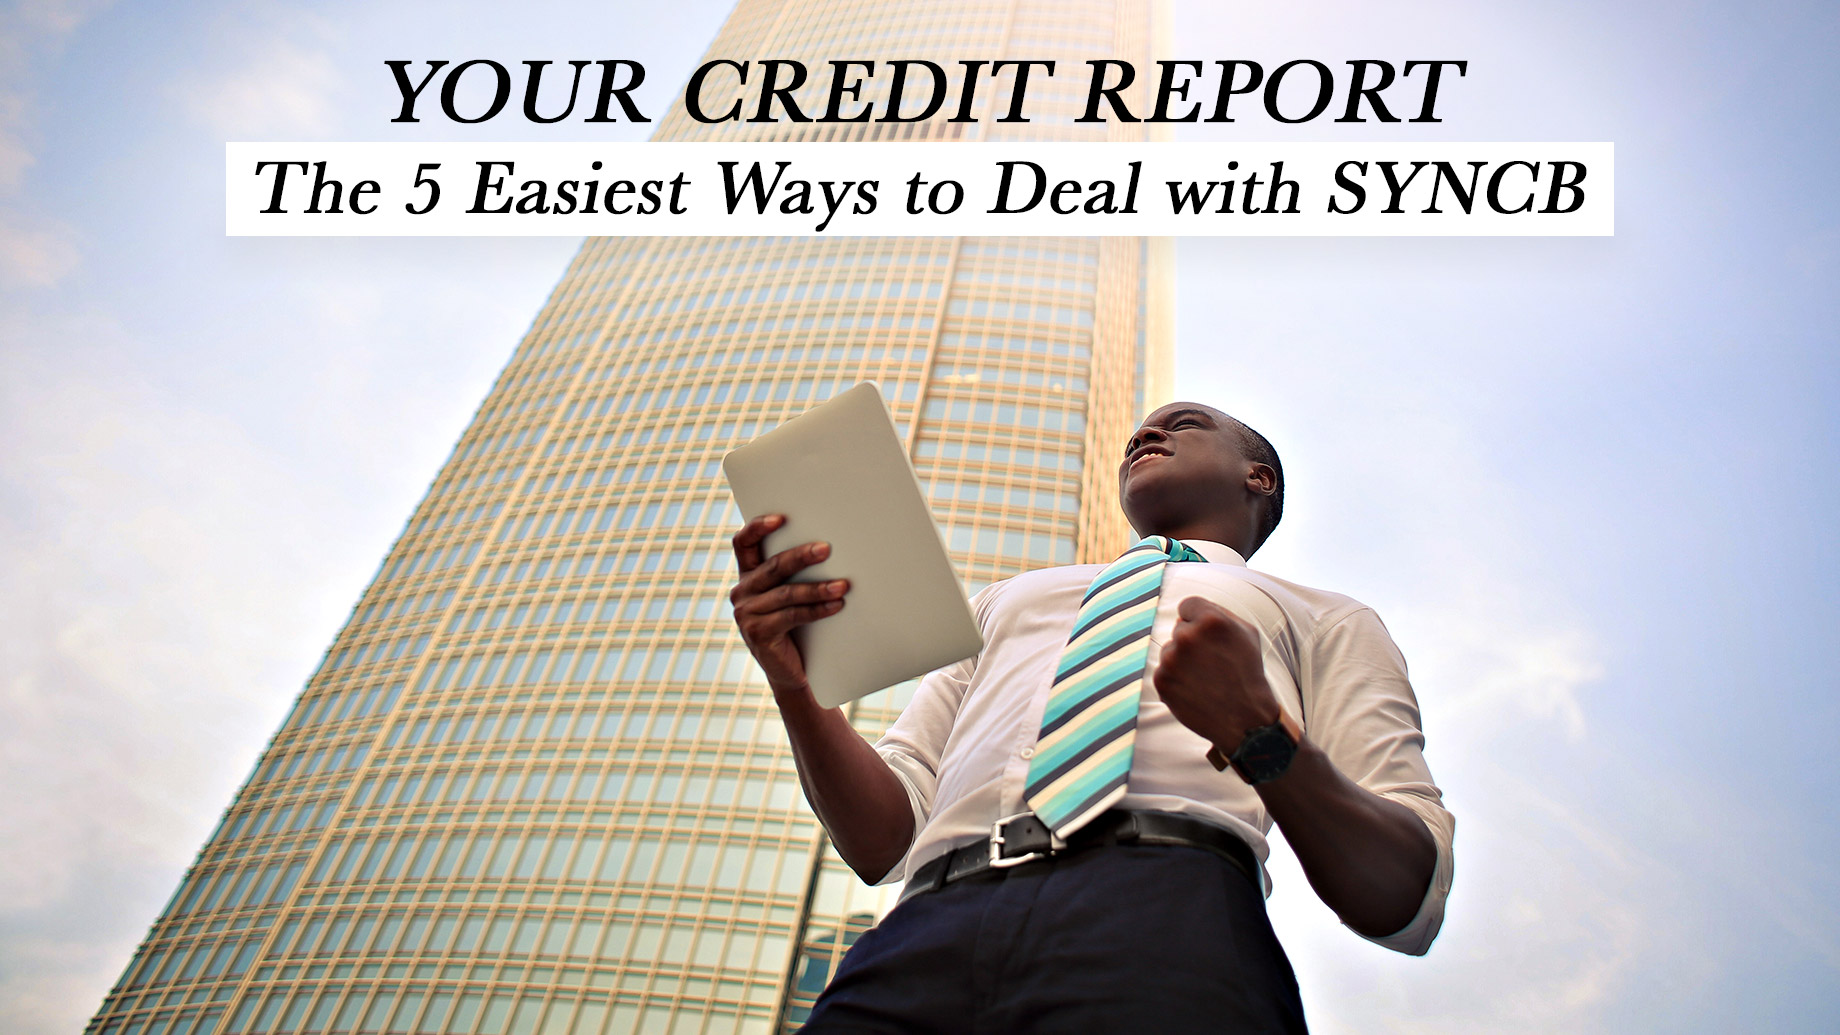 Your Credit Report - The 5 Easiest Ways to Deal with SYNCB